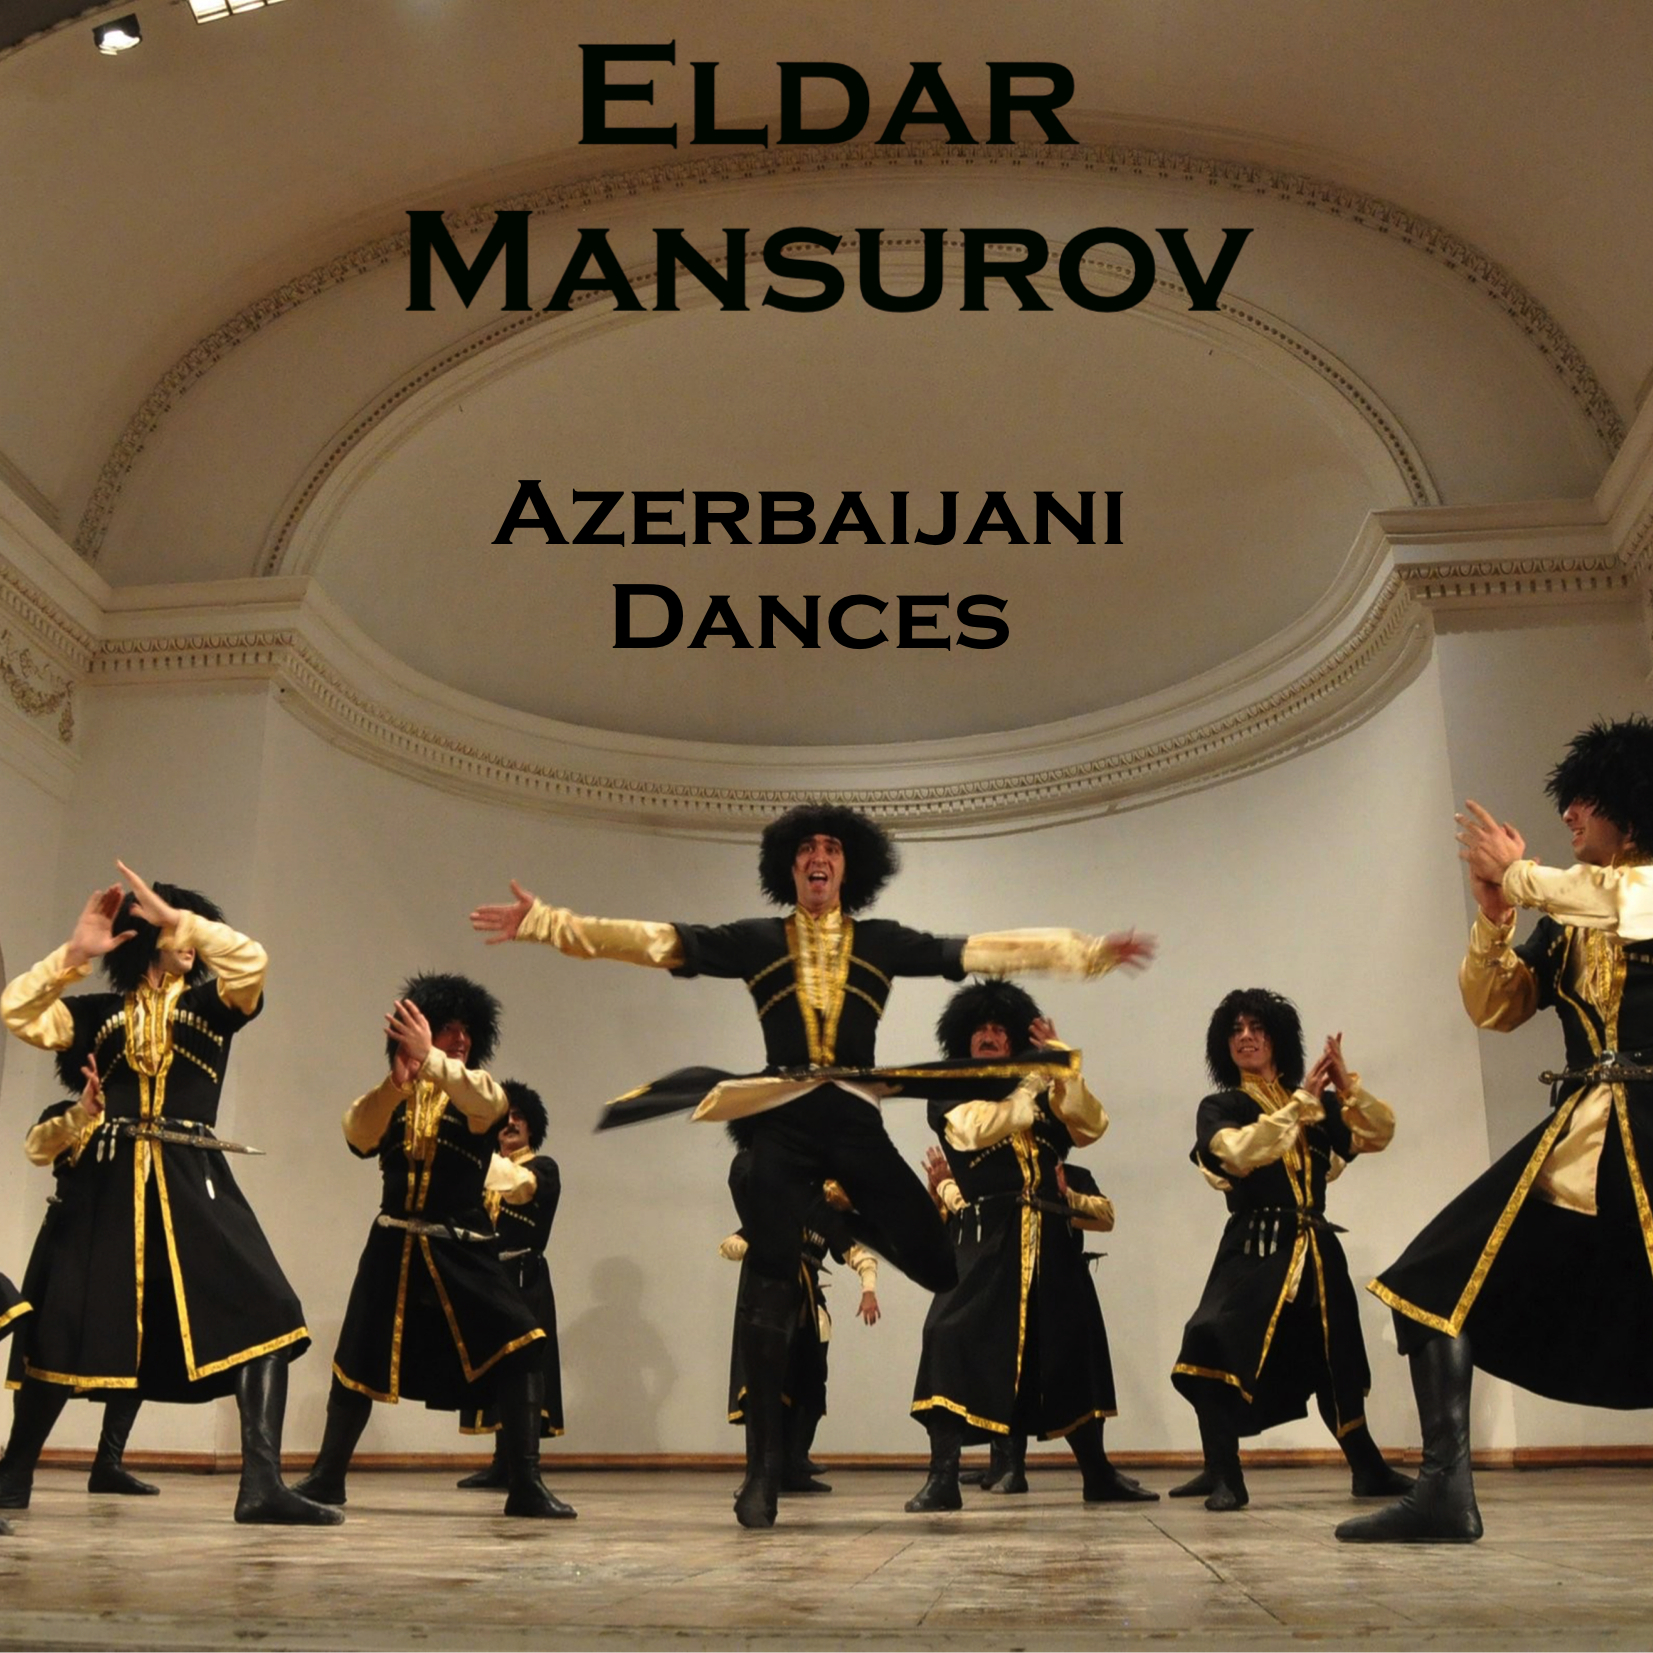 Azerbaijani Dances